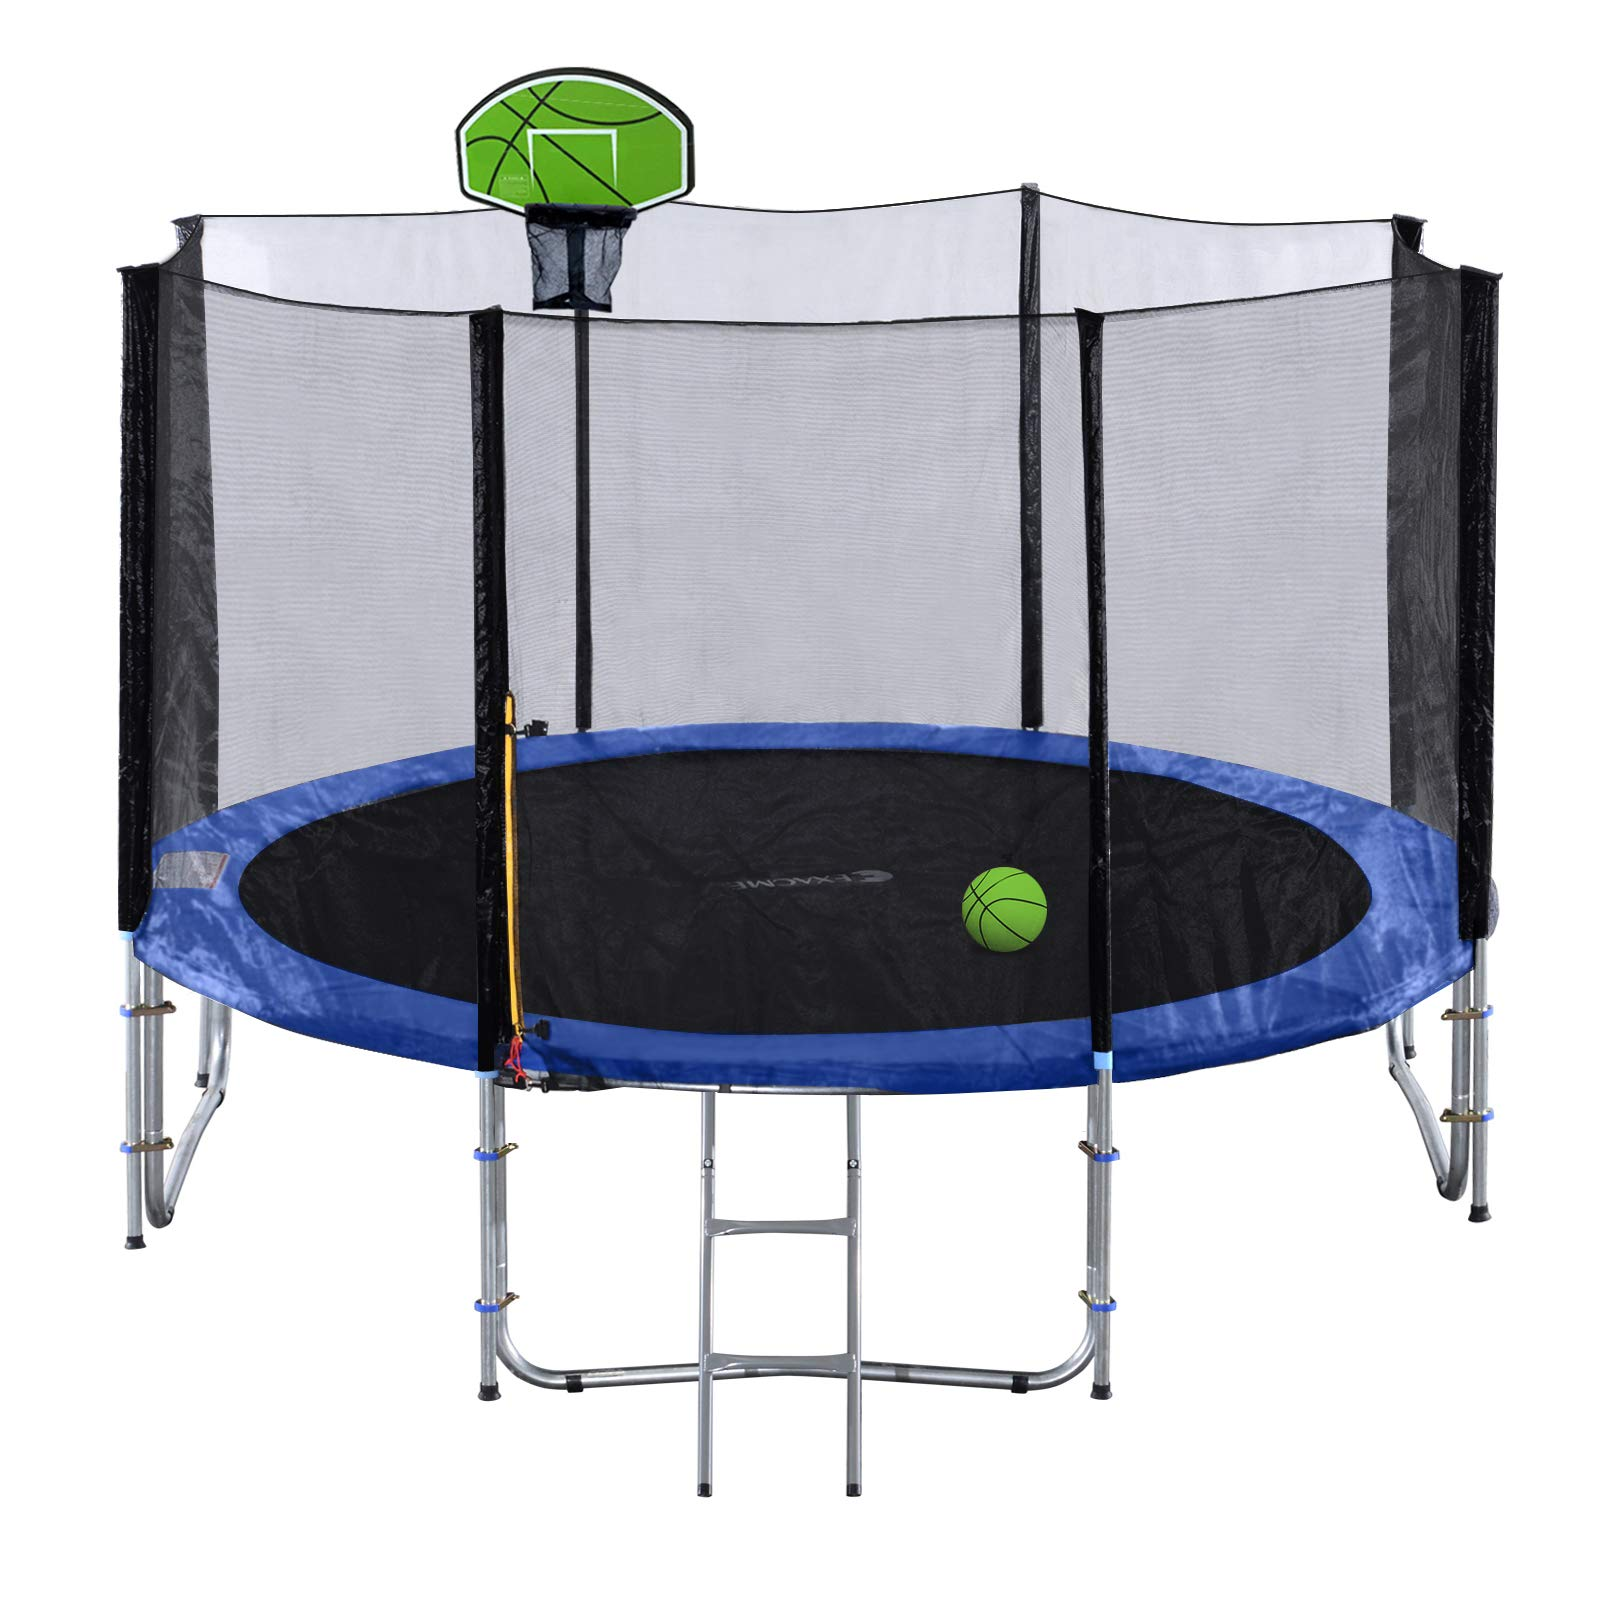 Exacme 10FT Trampoline with Safety Pad,Enclosure Net,Ladder and Green Basketball Hoop (10 FT)